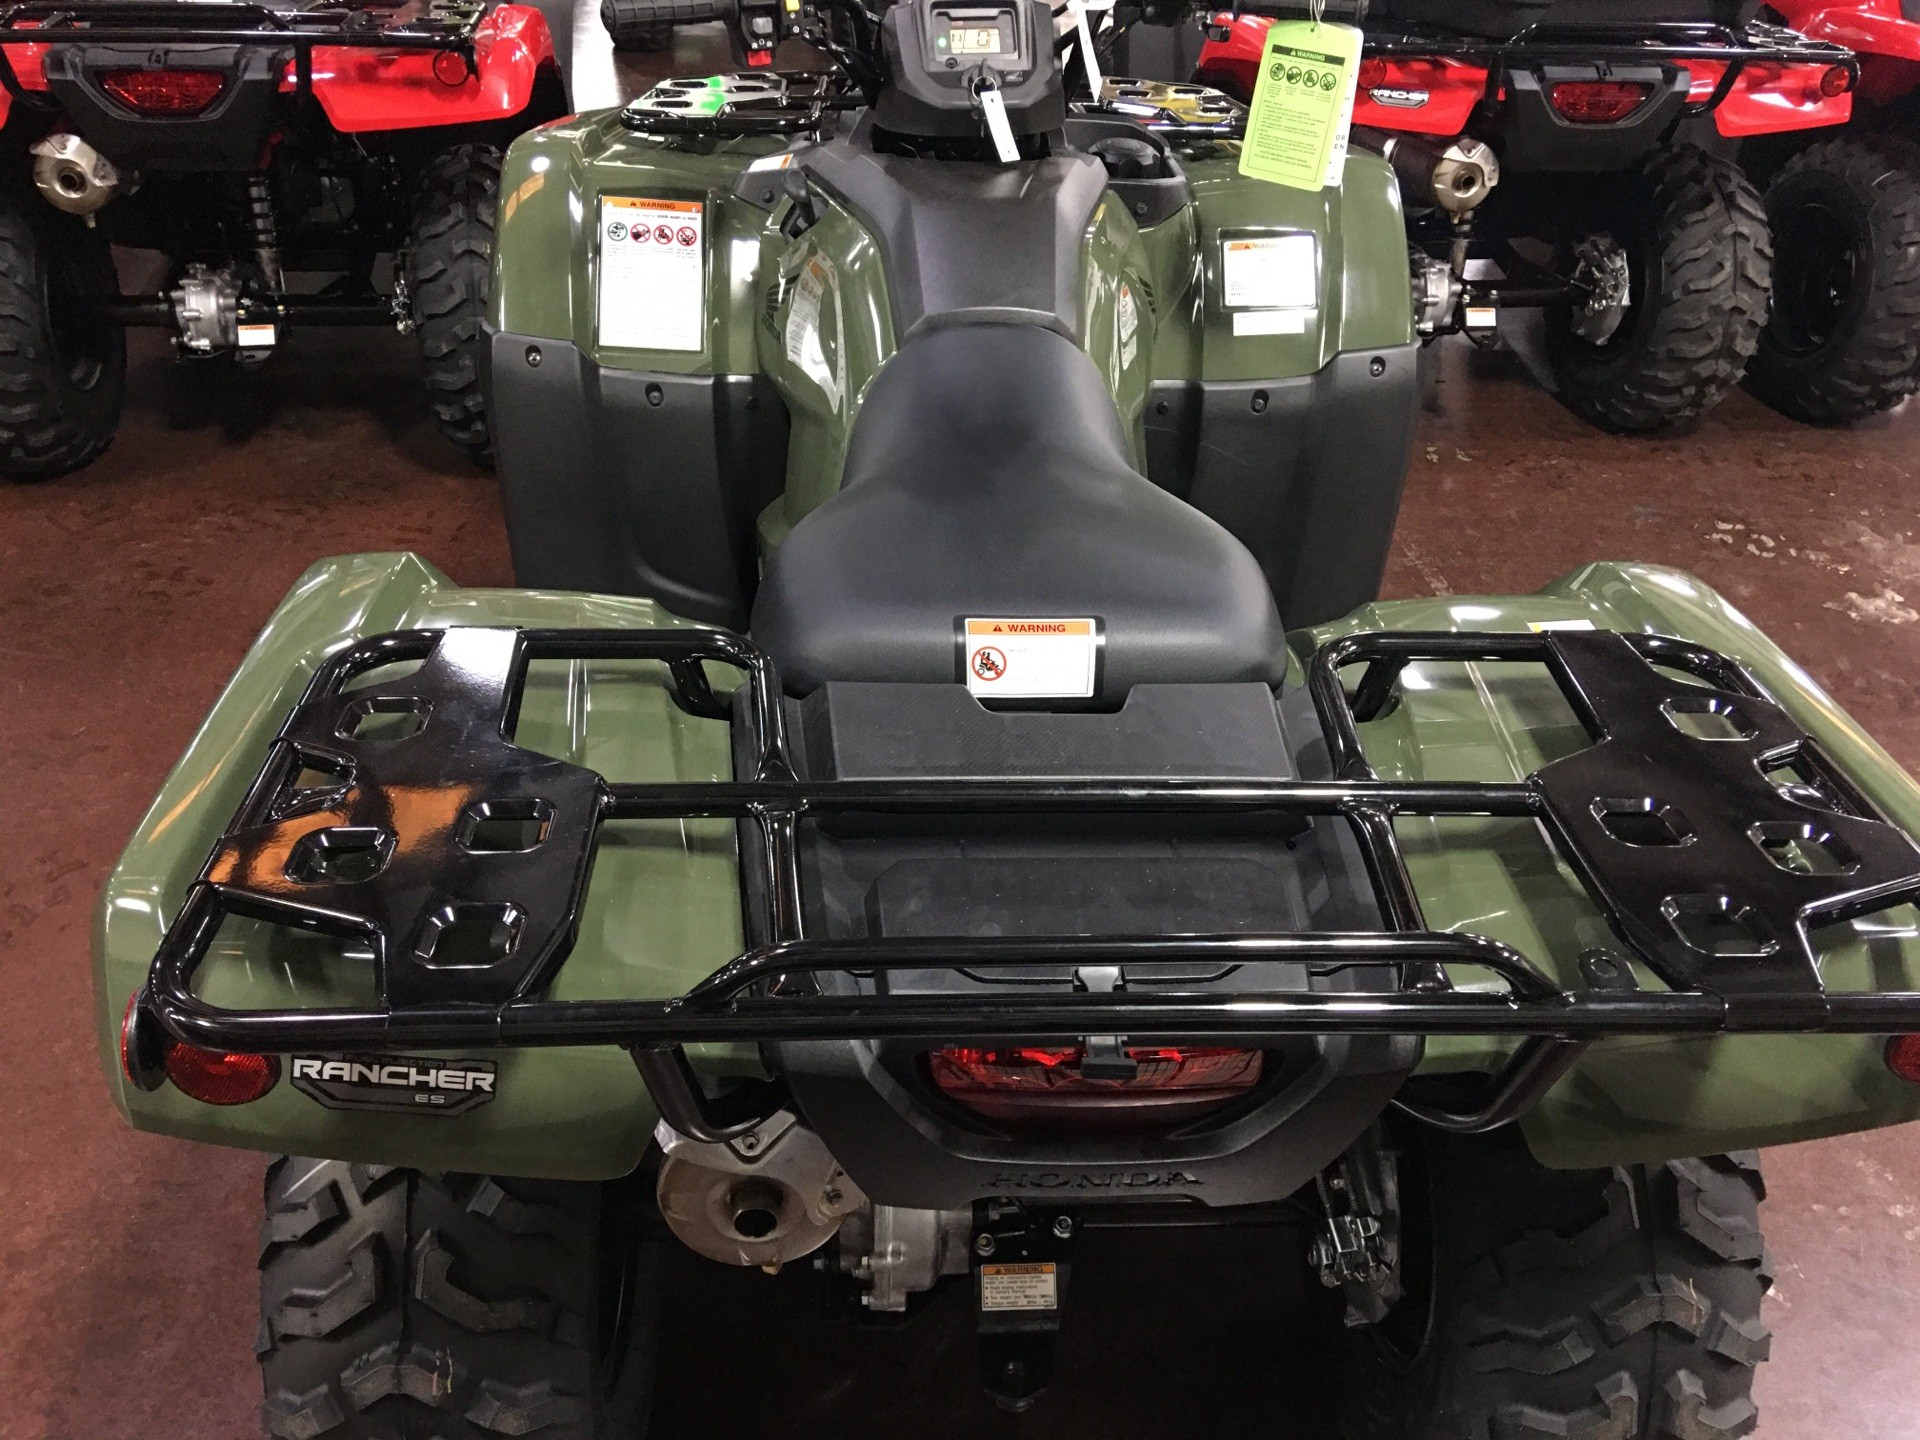 2021 Honda FourTrax Rancher 4x4 ES in Statesville, North Carolina - Photo 6